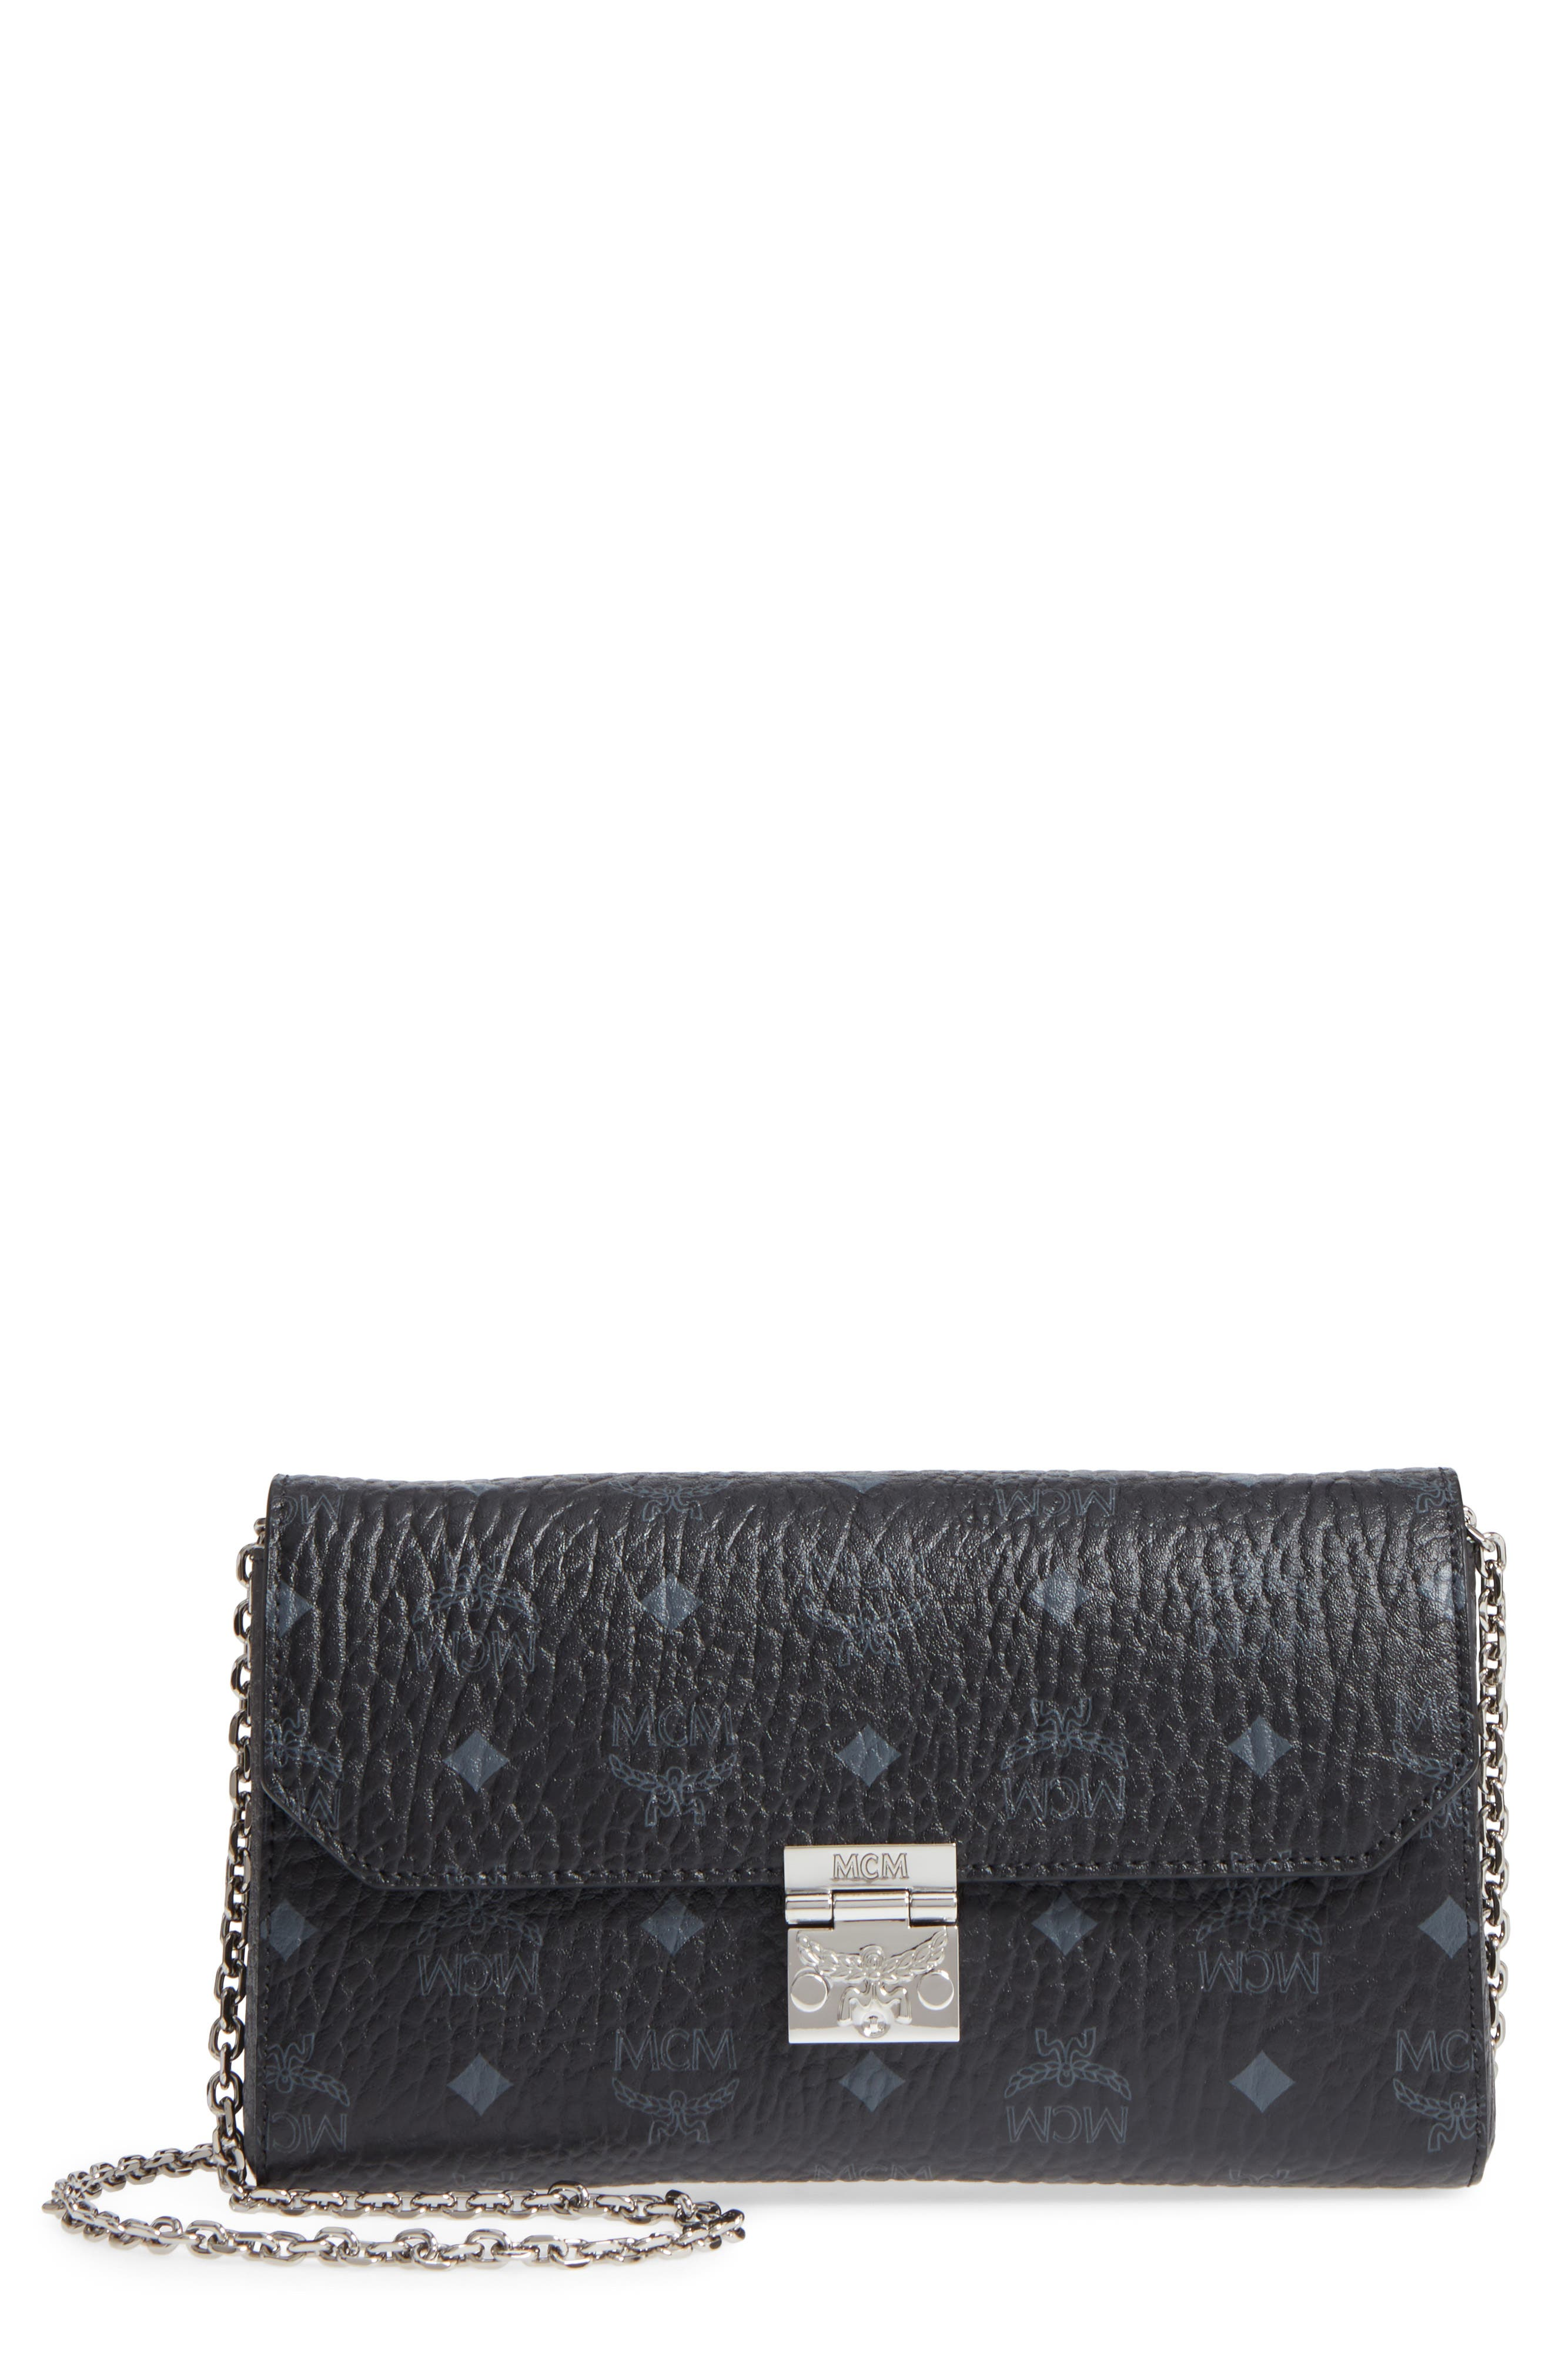 Millie Monogrammed Leather Crossbody Bag,                             Main thumbnail 1, color,                             001